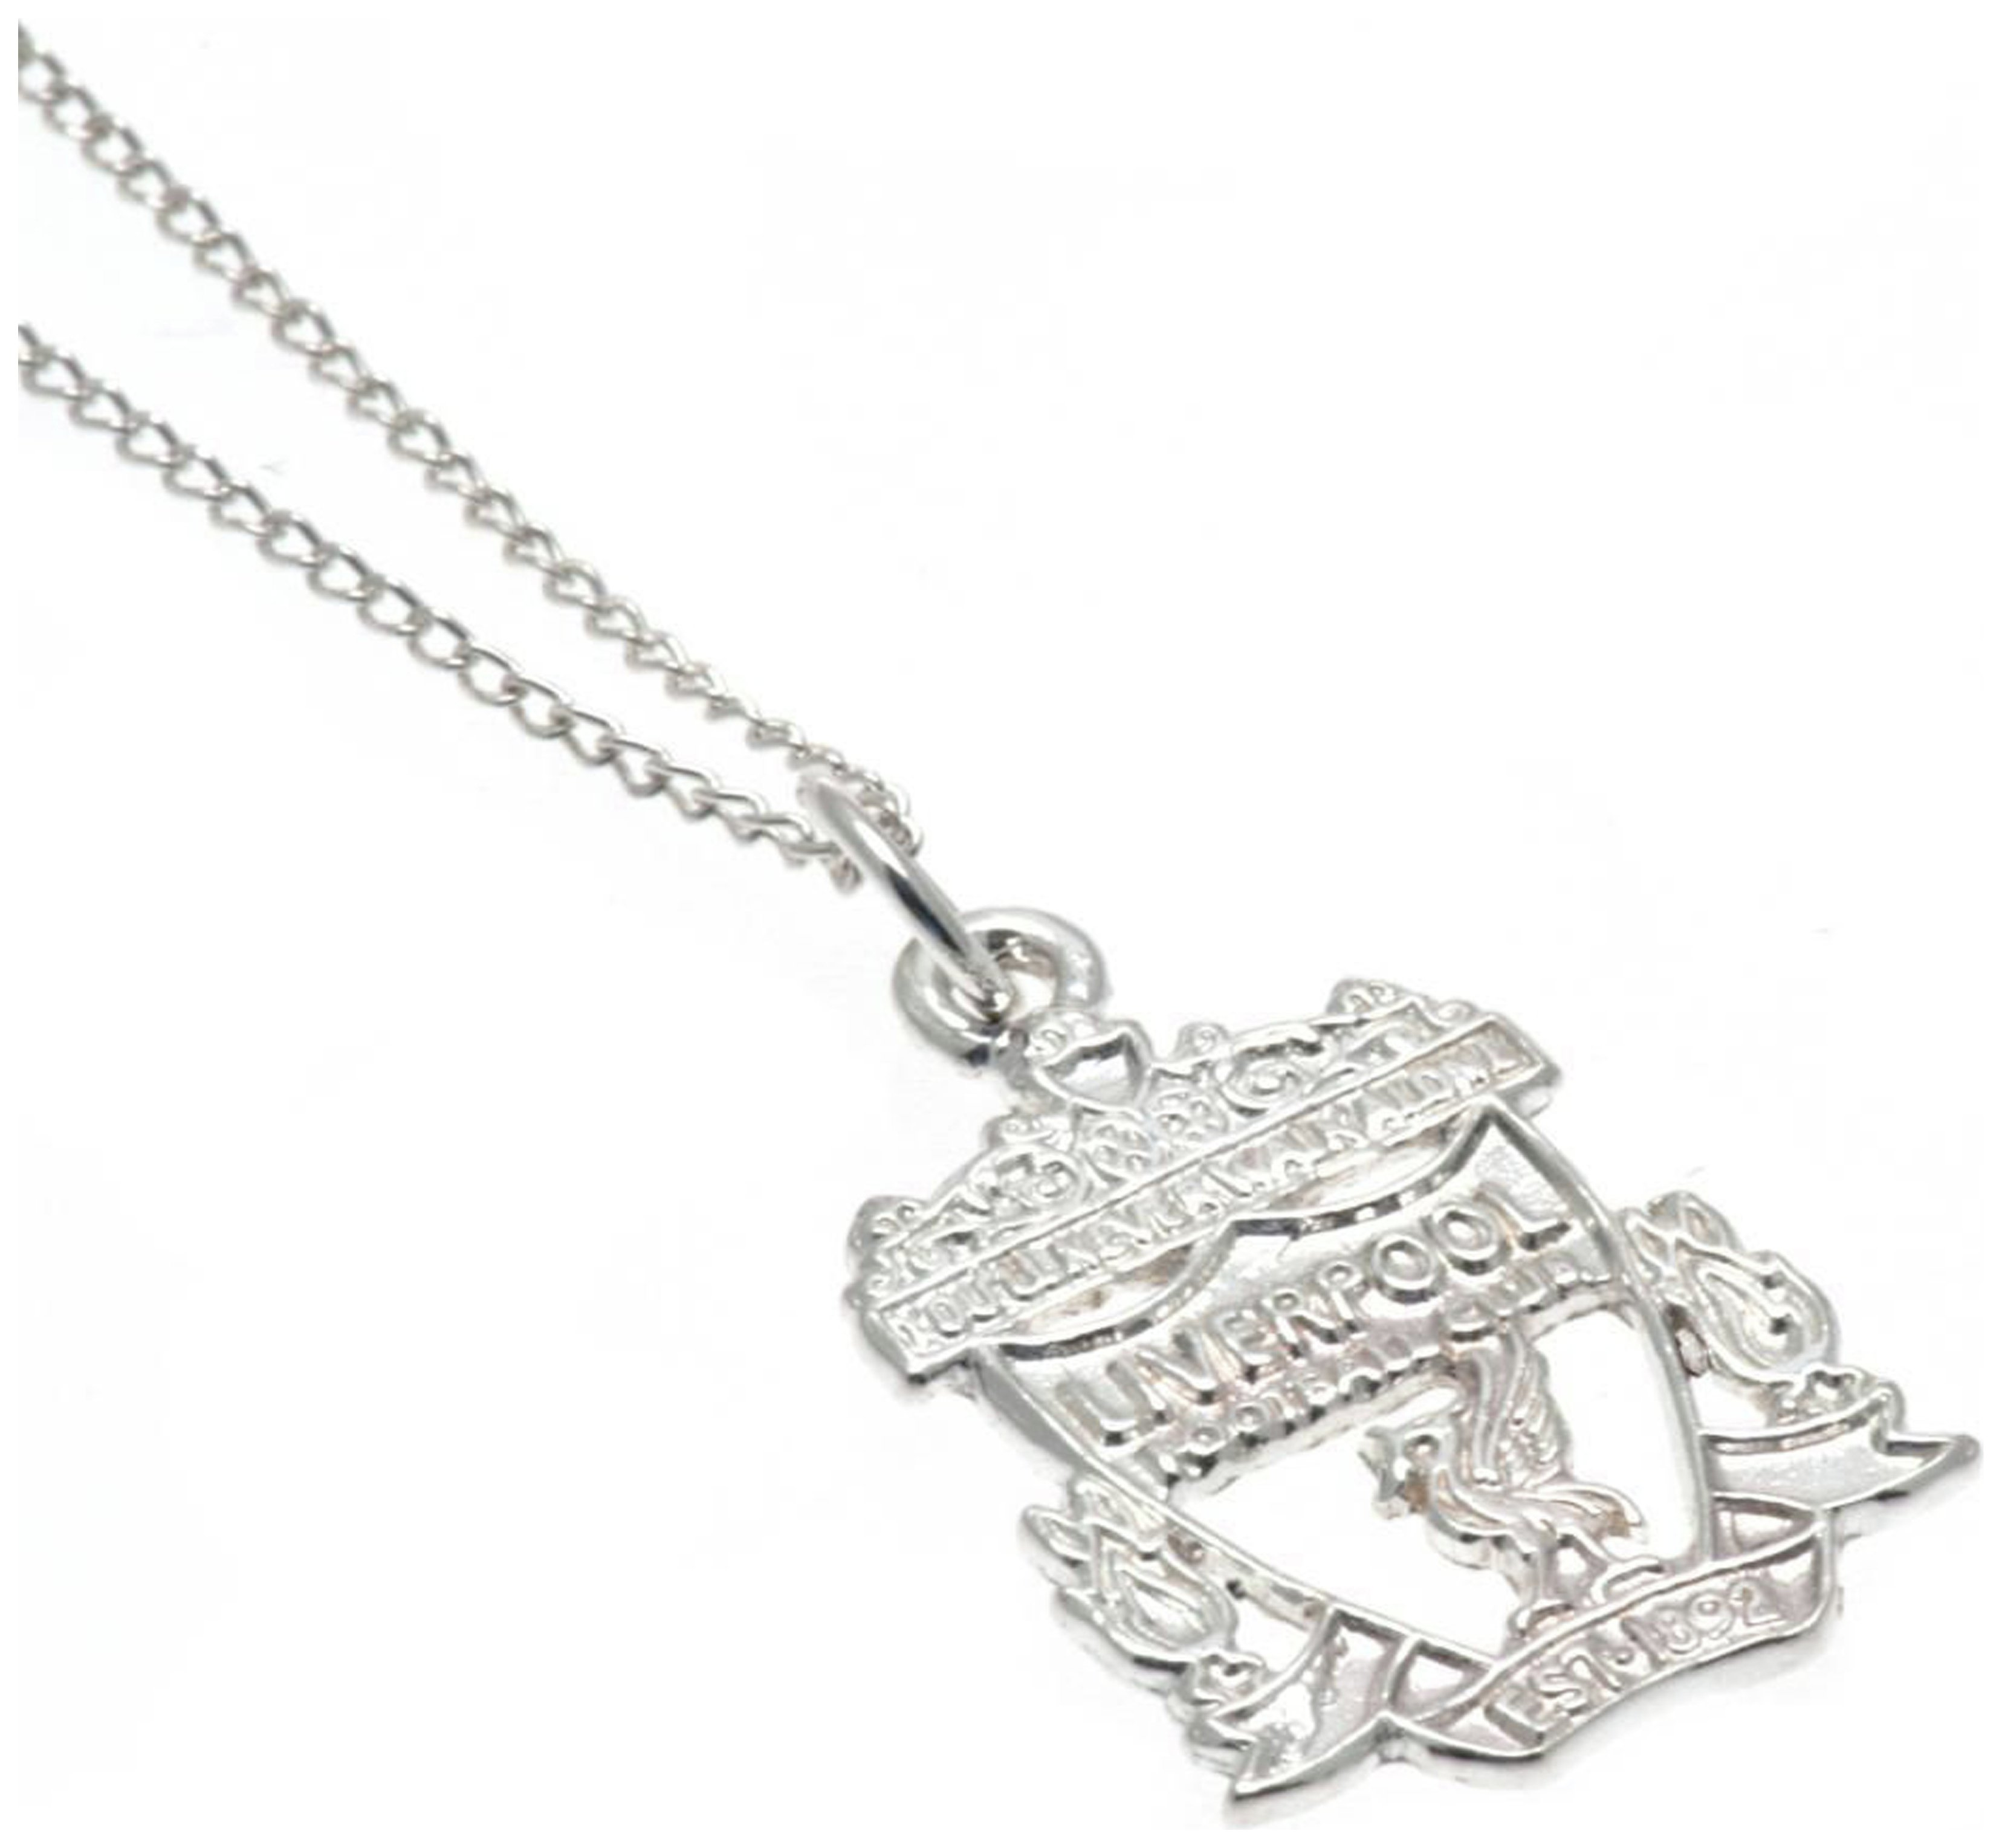 Image of Sterling Silver Liverpool FC Crest Pendant